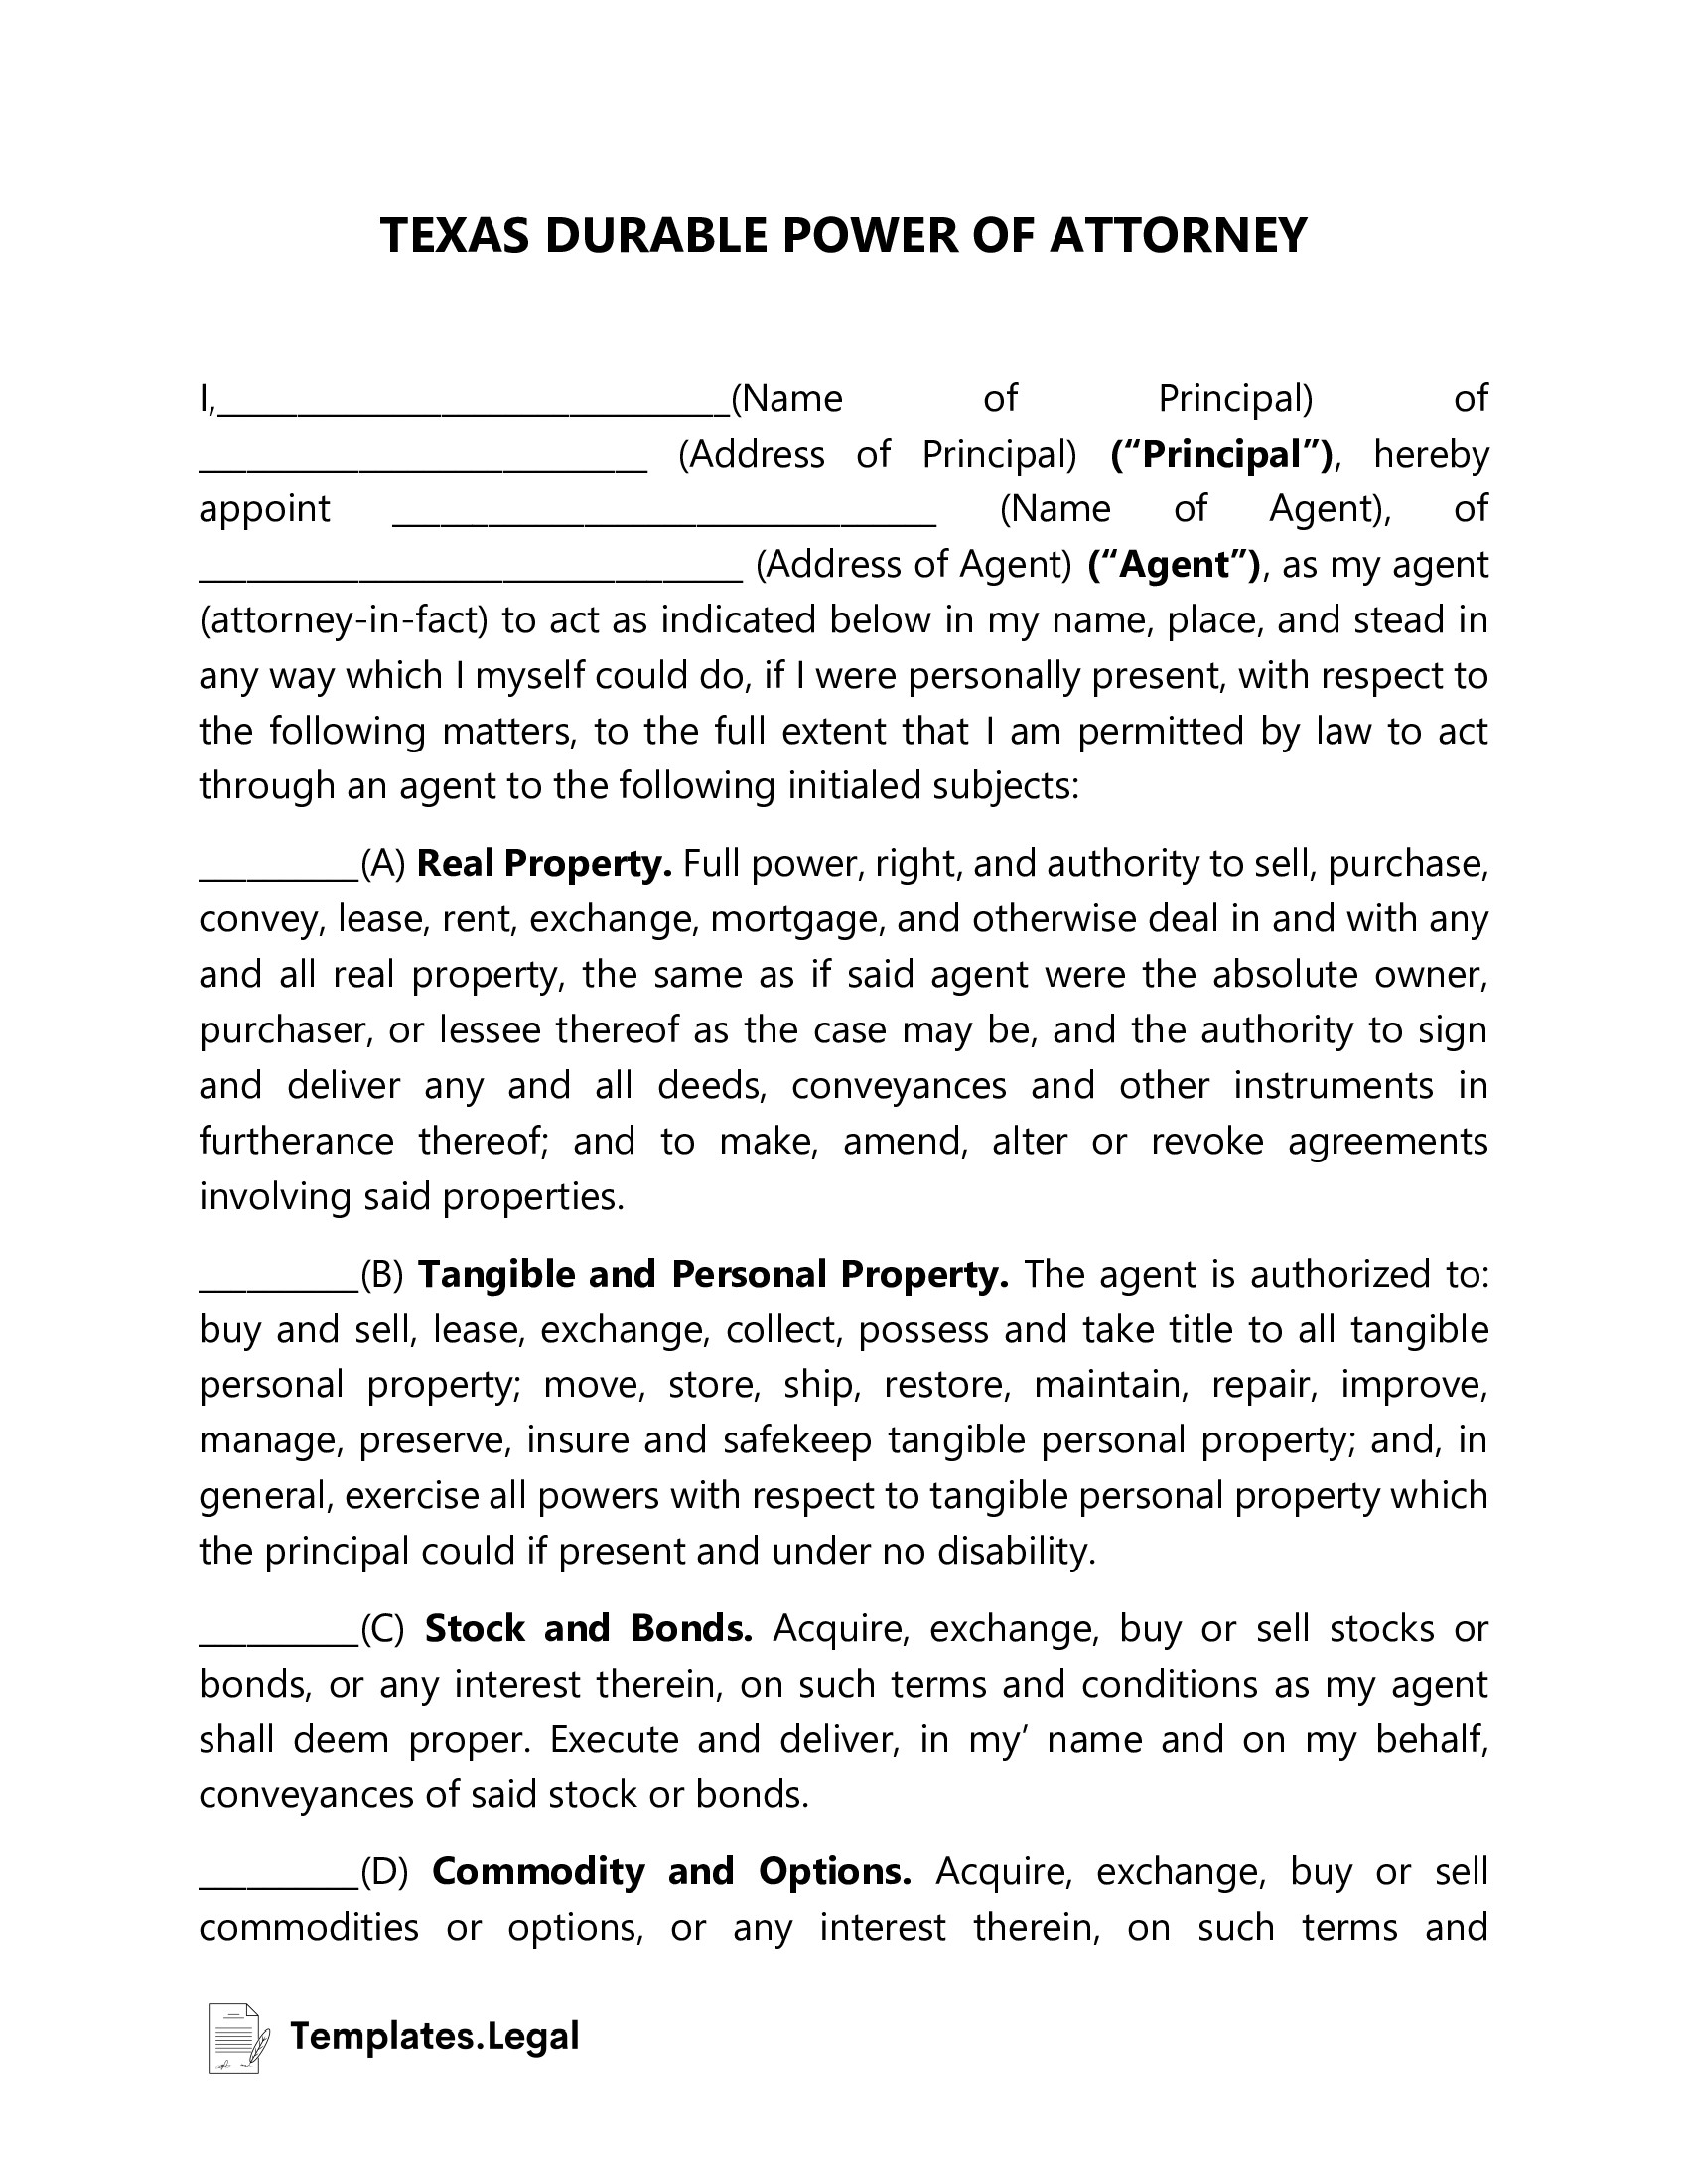 Texas Durable Power of Attorney - Templates.Legal